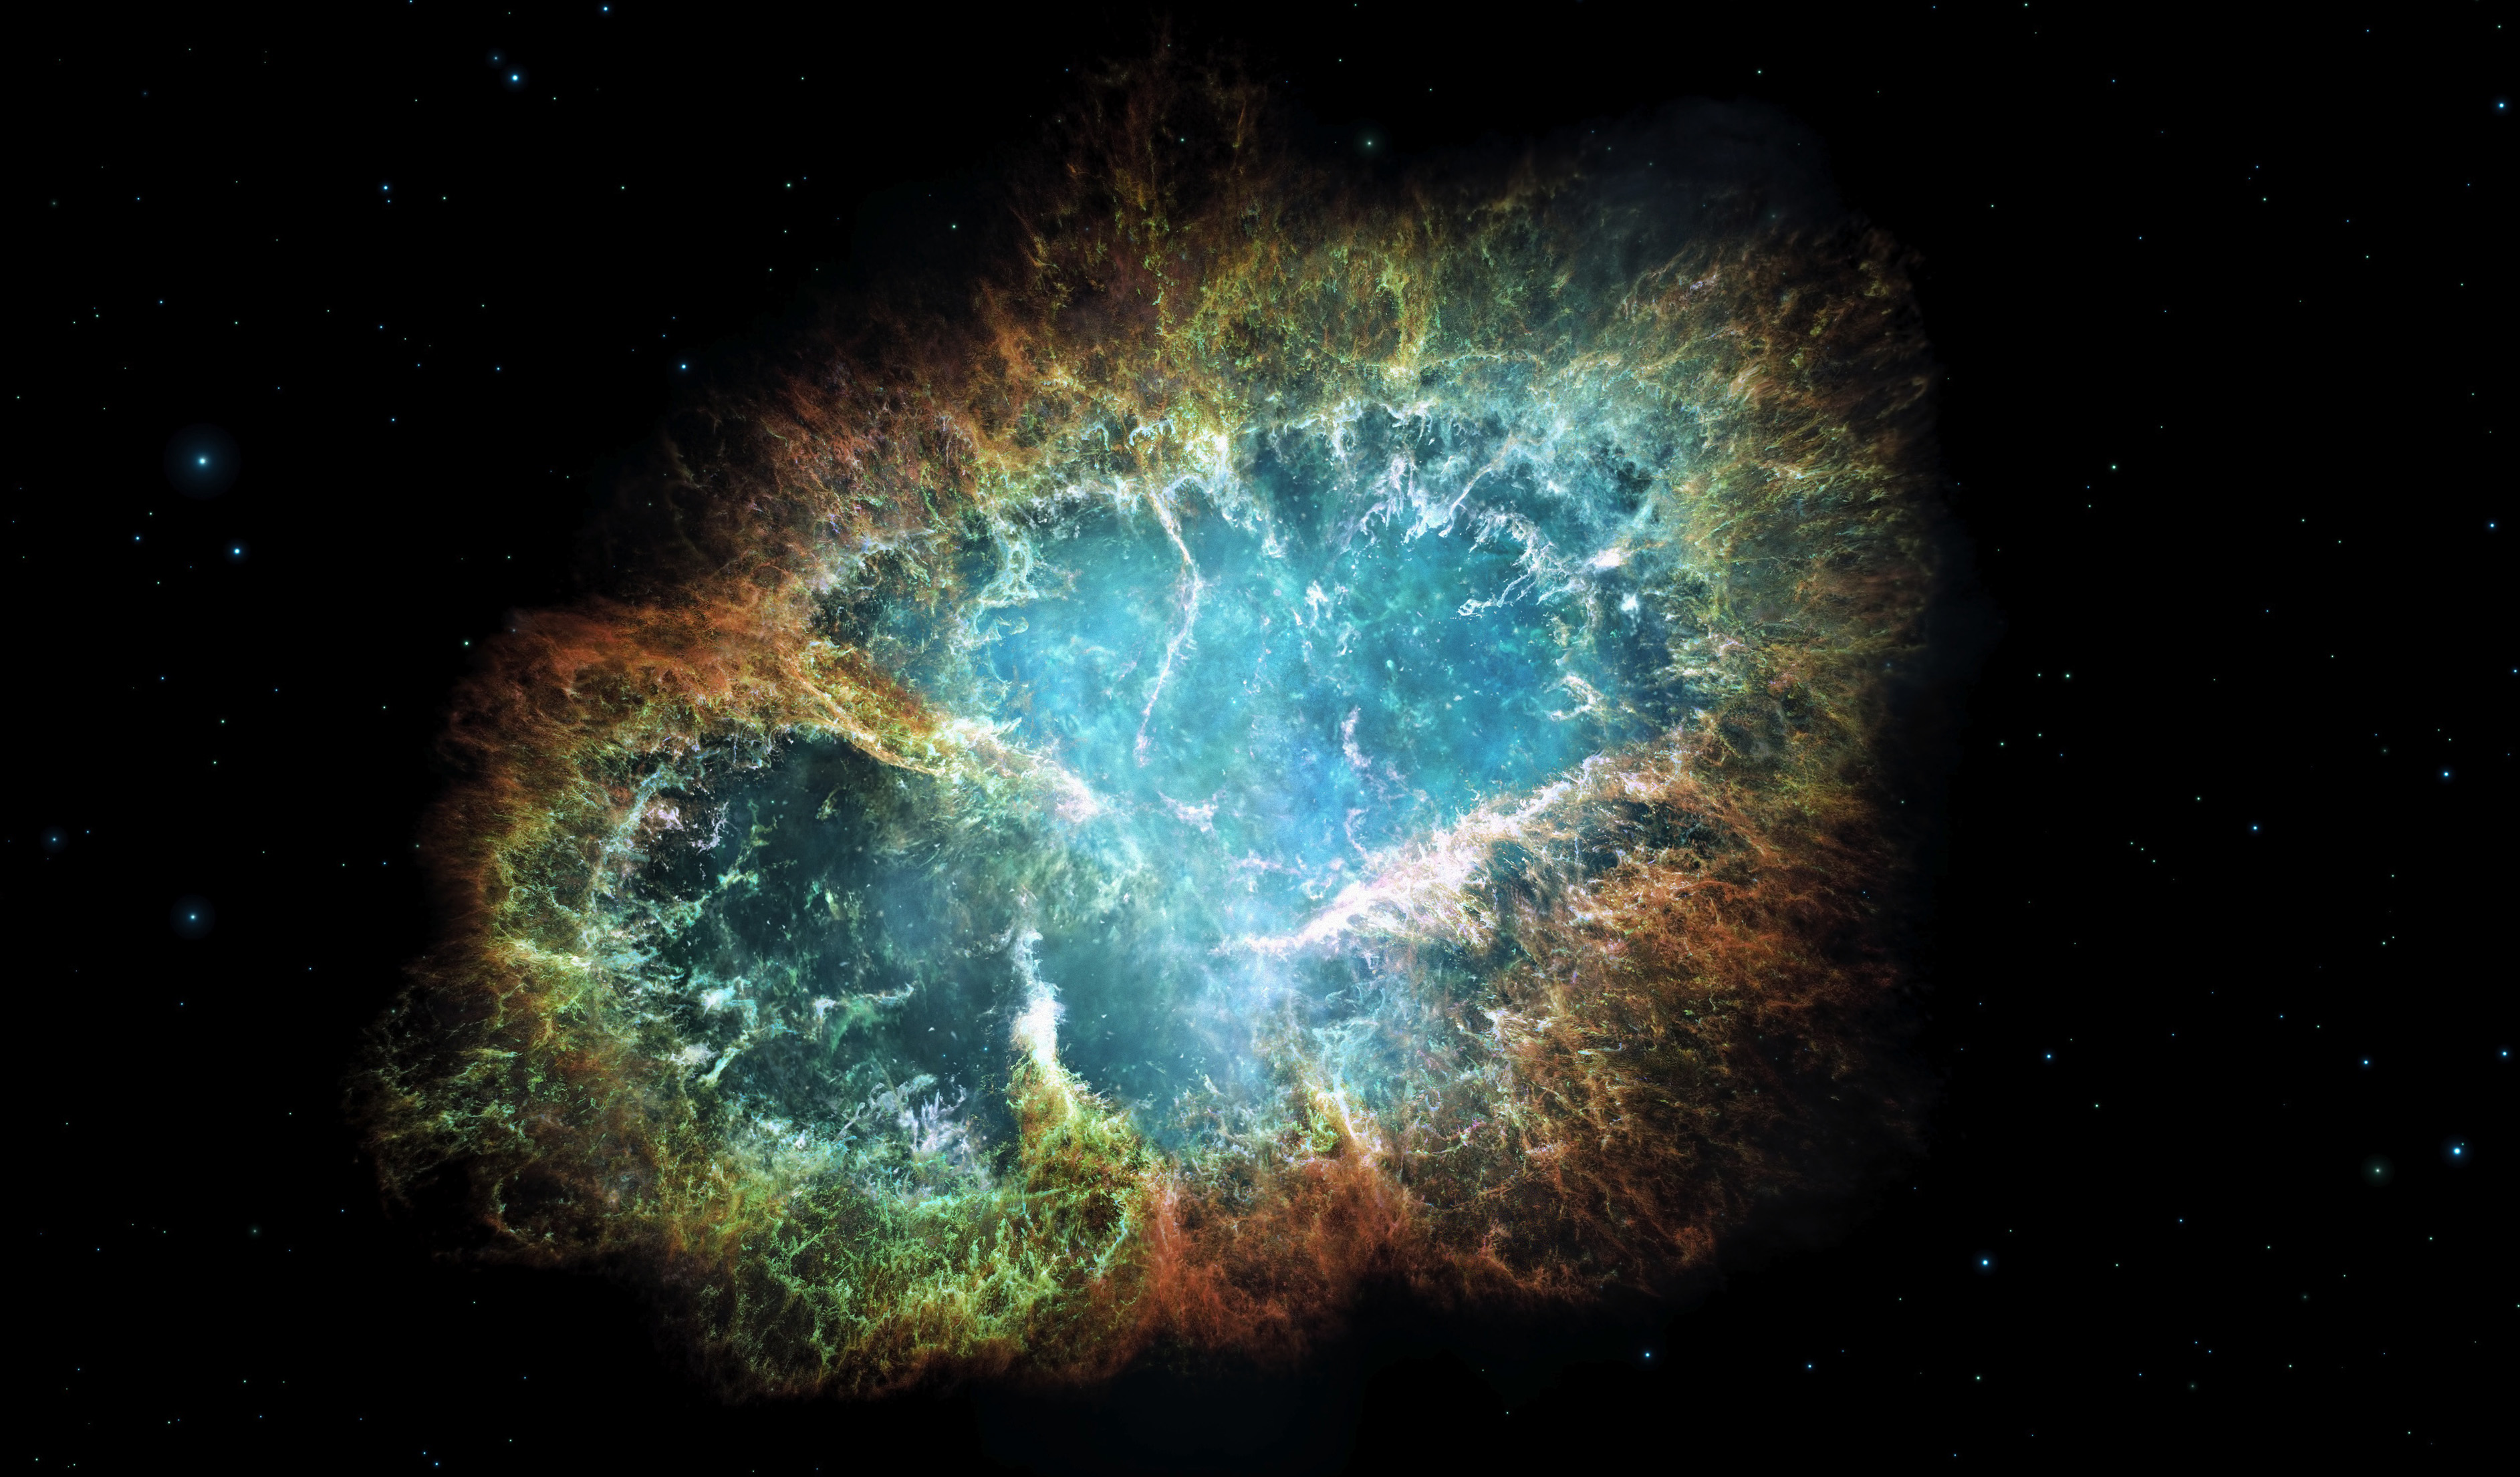 Galaxy Wallpapers High Resolution: Crab Nebula For Cool Galaxy Backgrounds